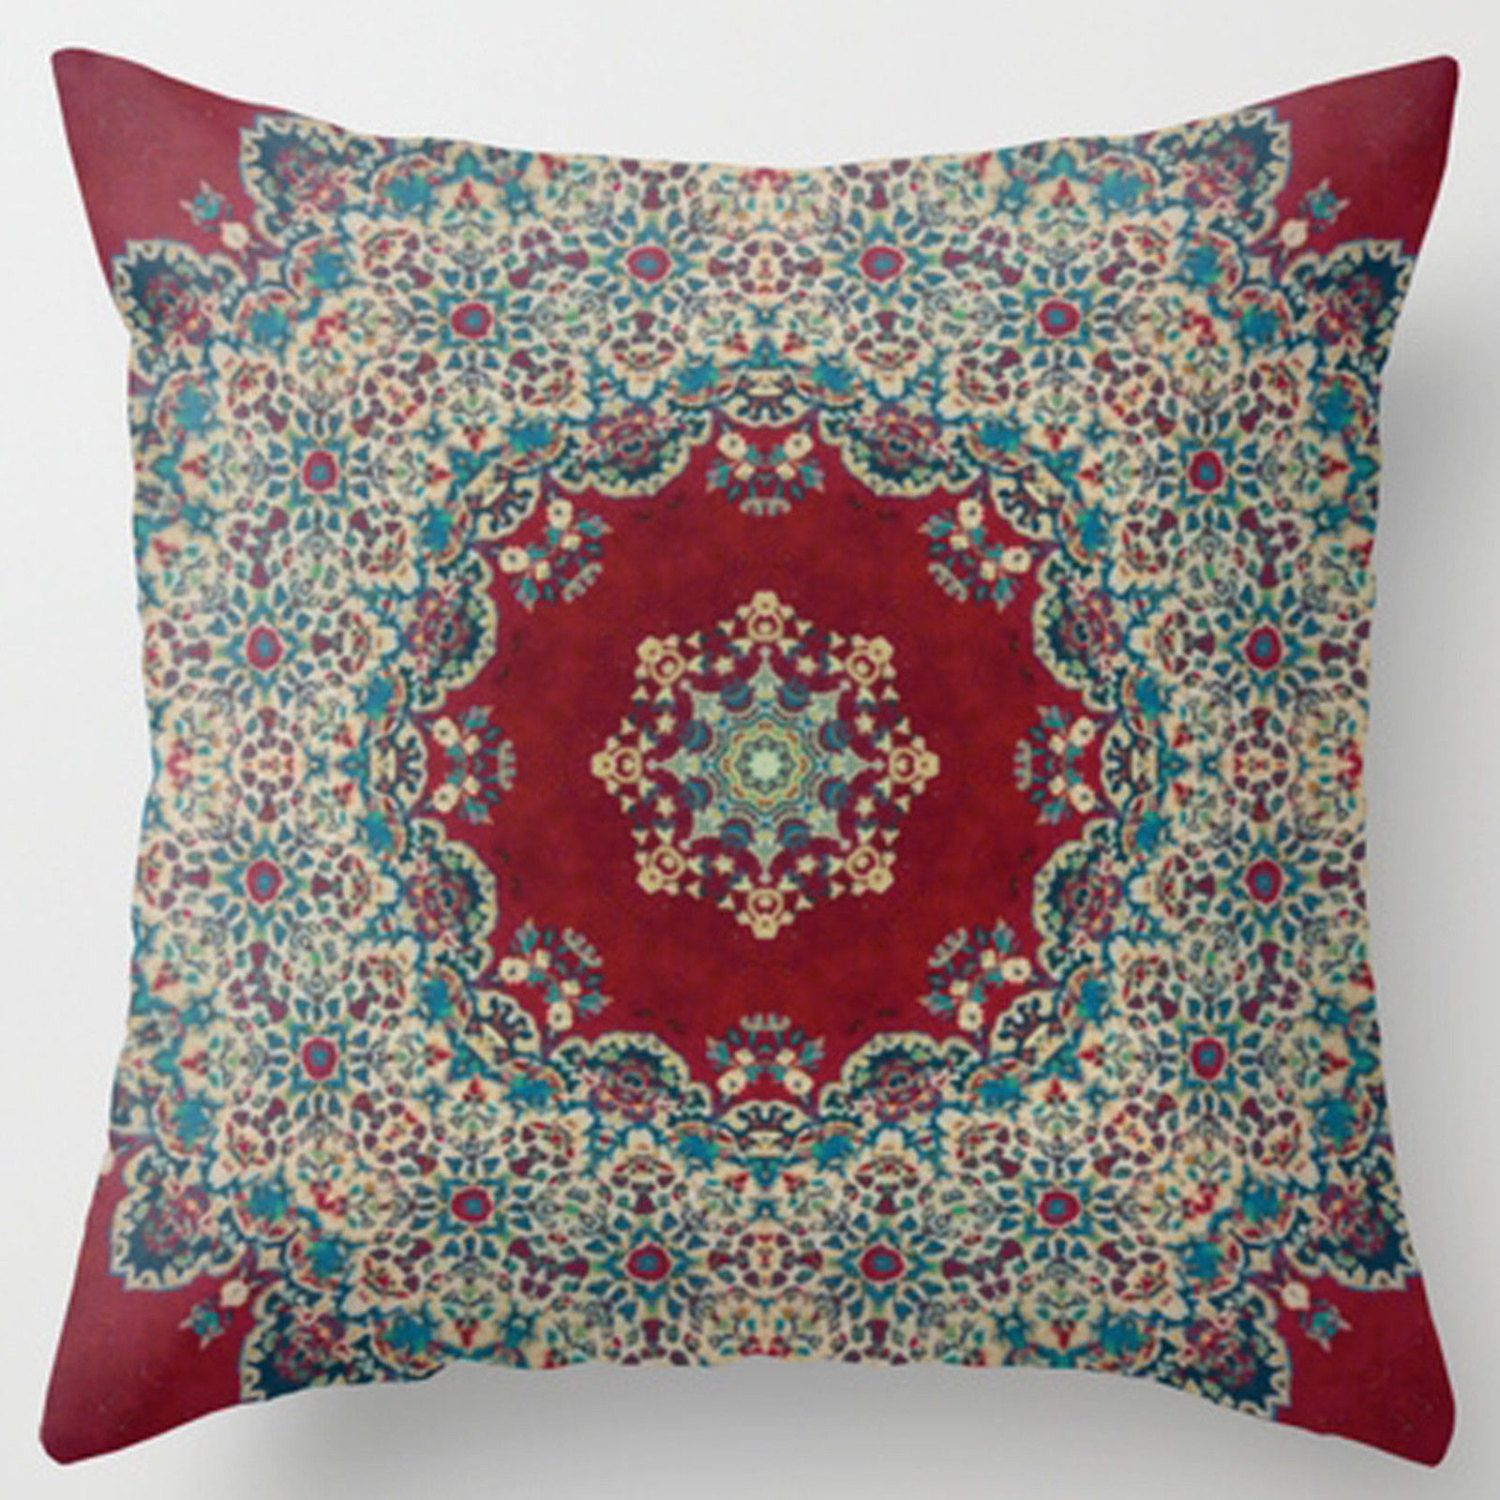 Etsy Throw Pillows Indian Boho 18 X 18 Square Custom Throw Accent Toss Pillow Case